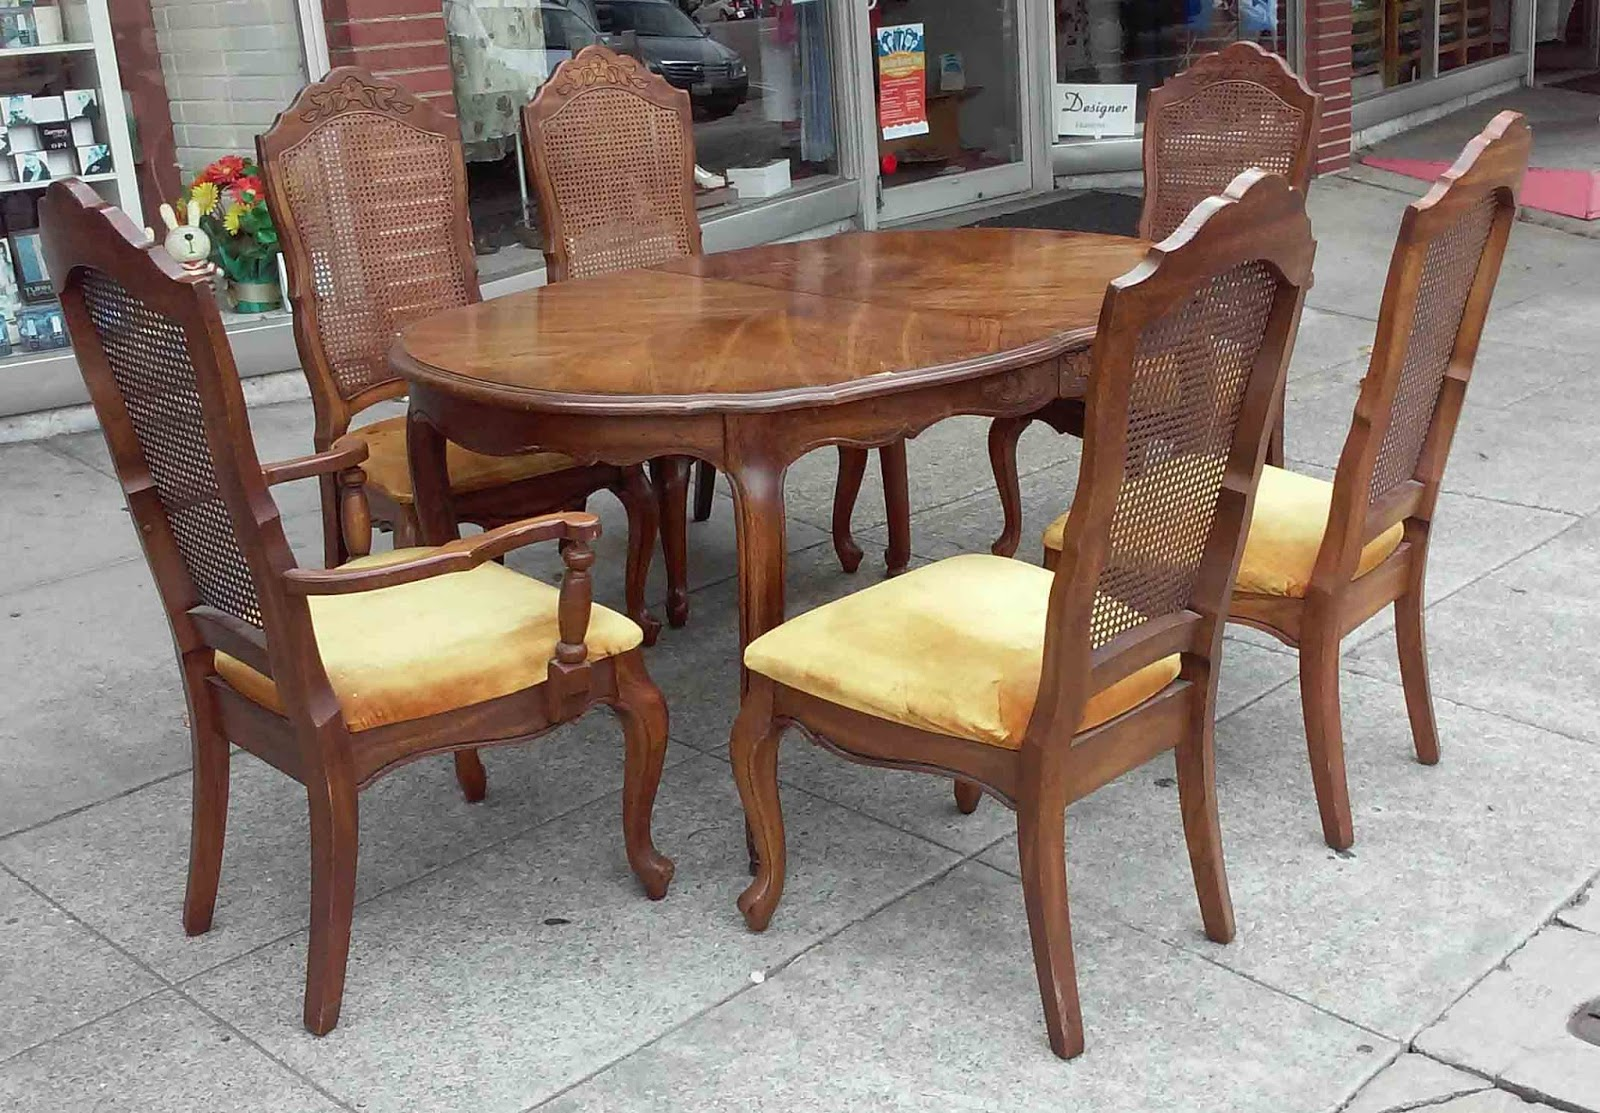 Parisian Table And Chairs Folding Chair Parts Uhuru Furniture Collectibles Sold French Style Dining